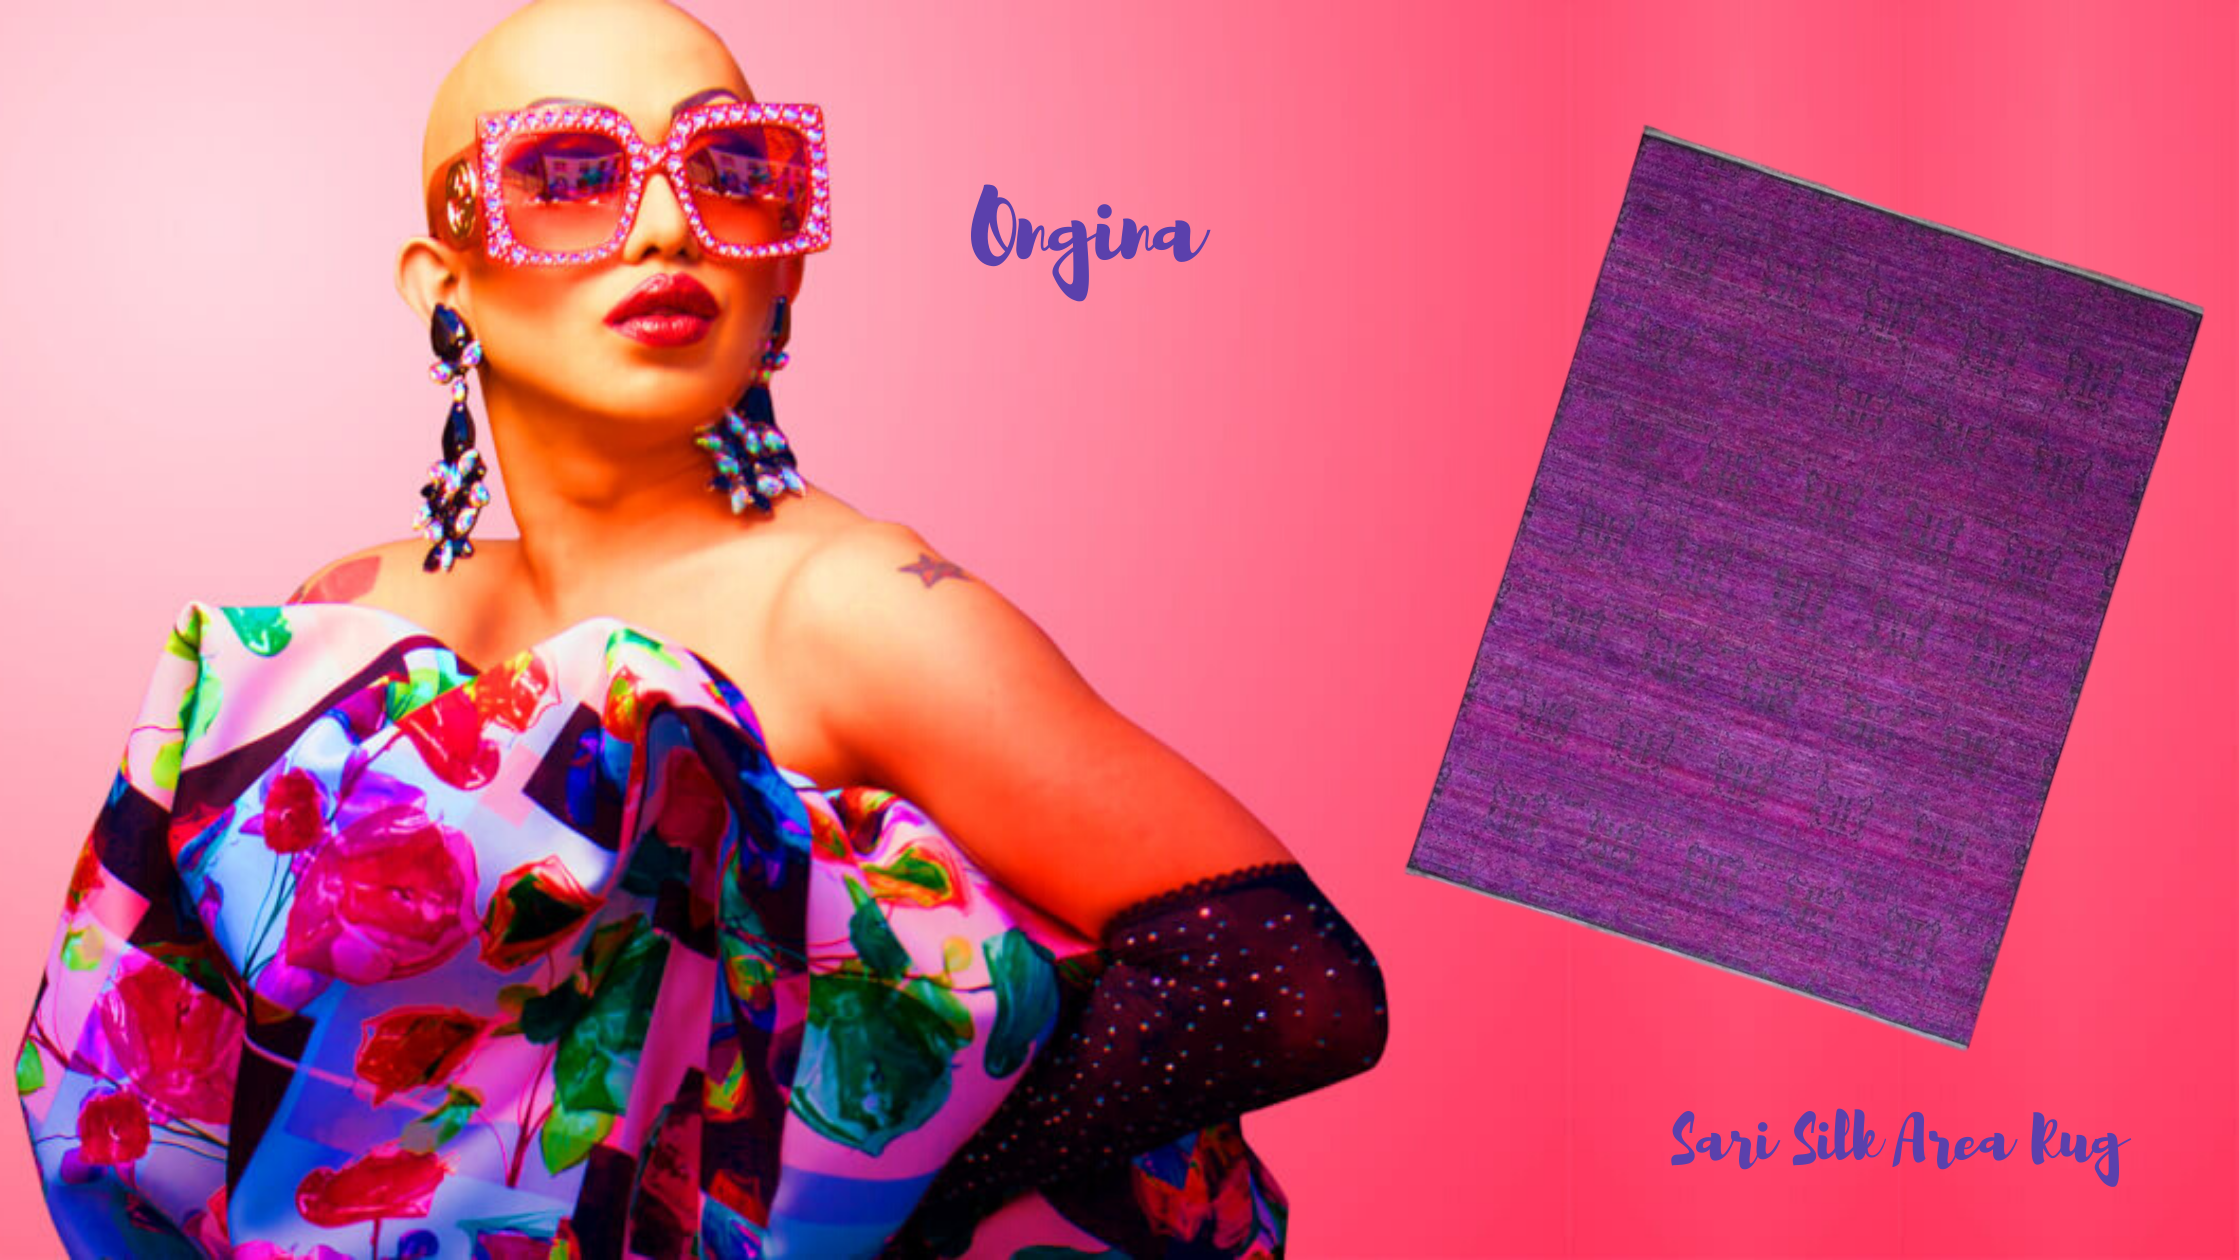 Drag Queen Ongina Image by Getty Images and the Sari Silk Area Rug Imported by S&H Rugs